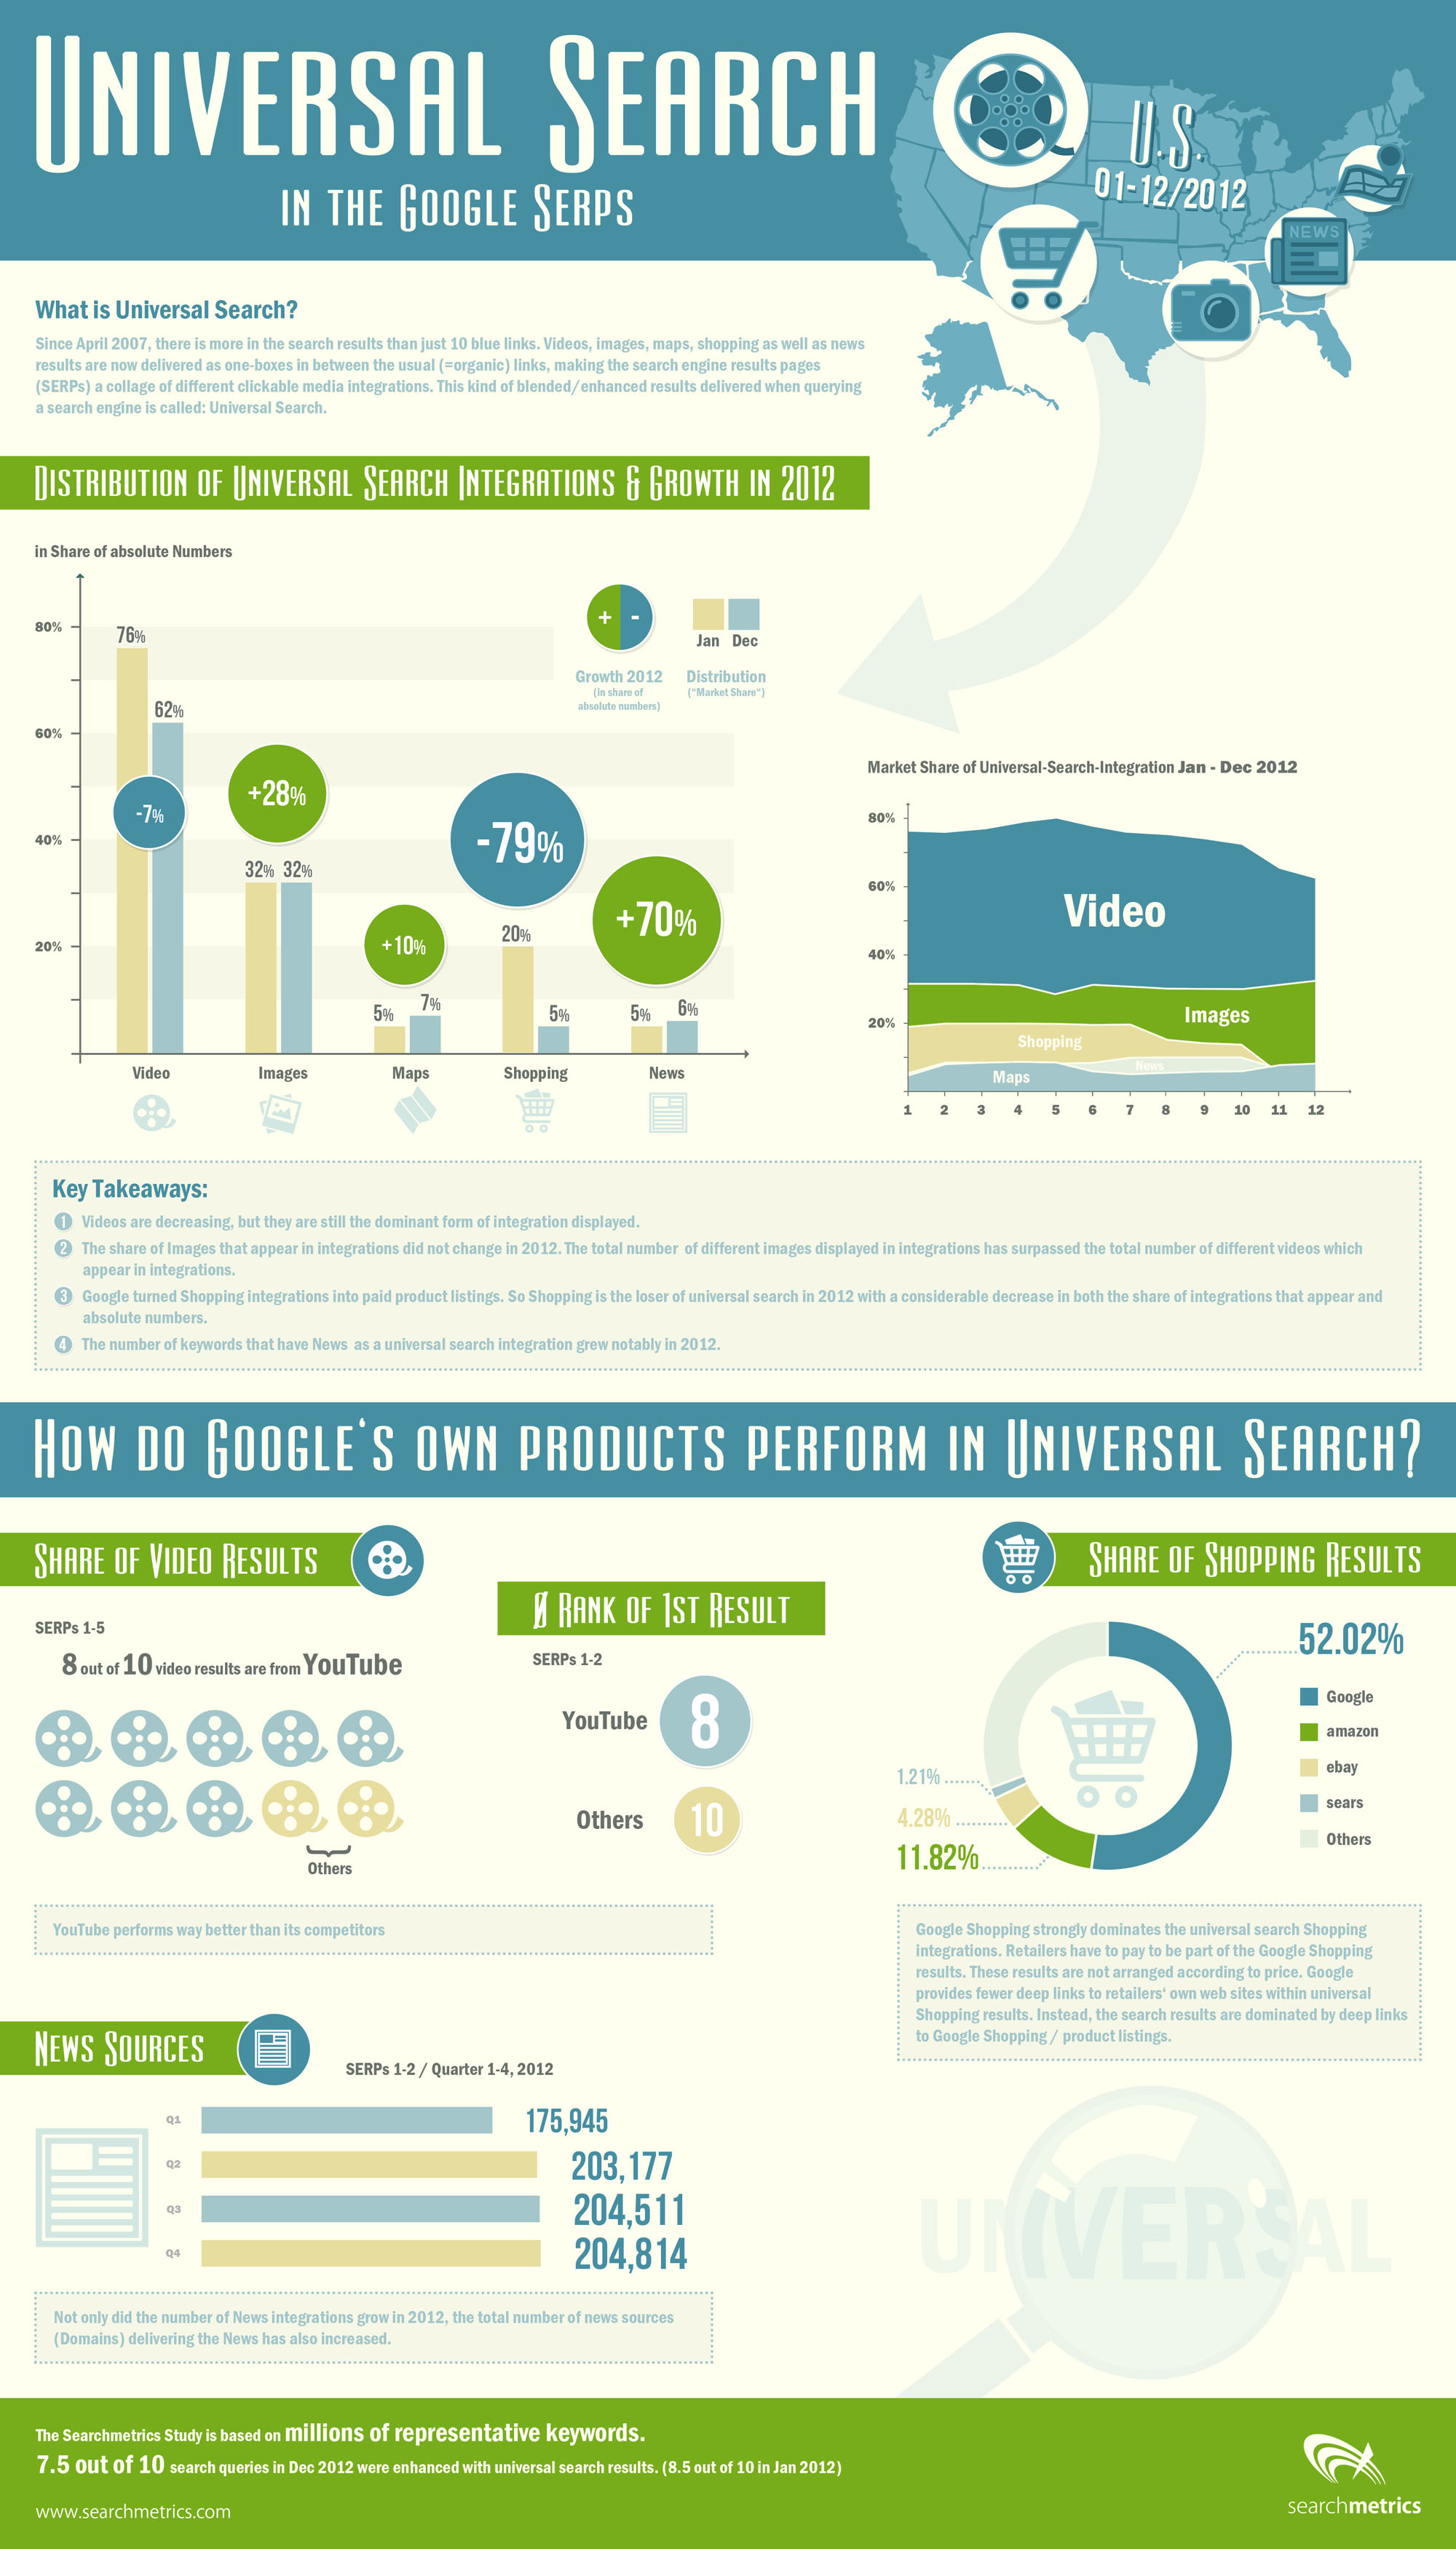 Searchmetrics_universal_search_infographic